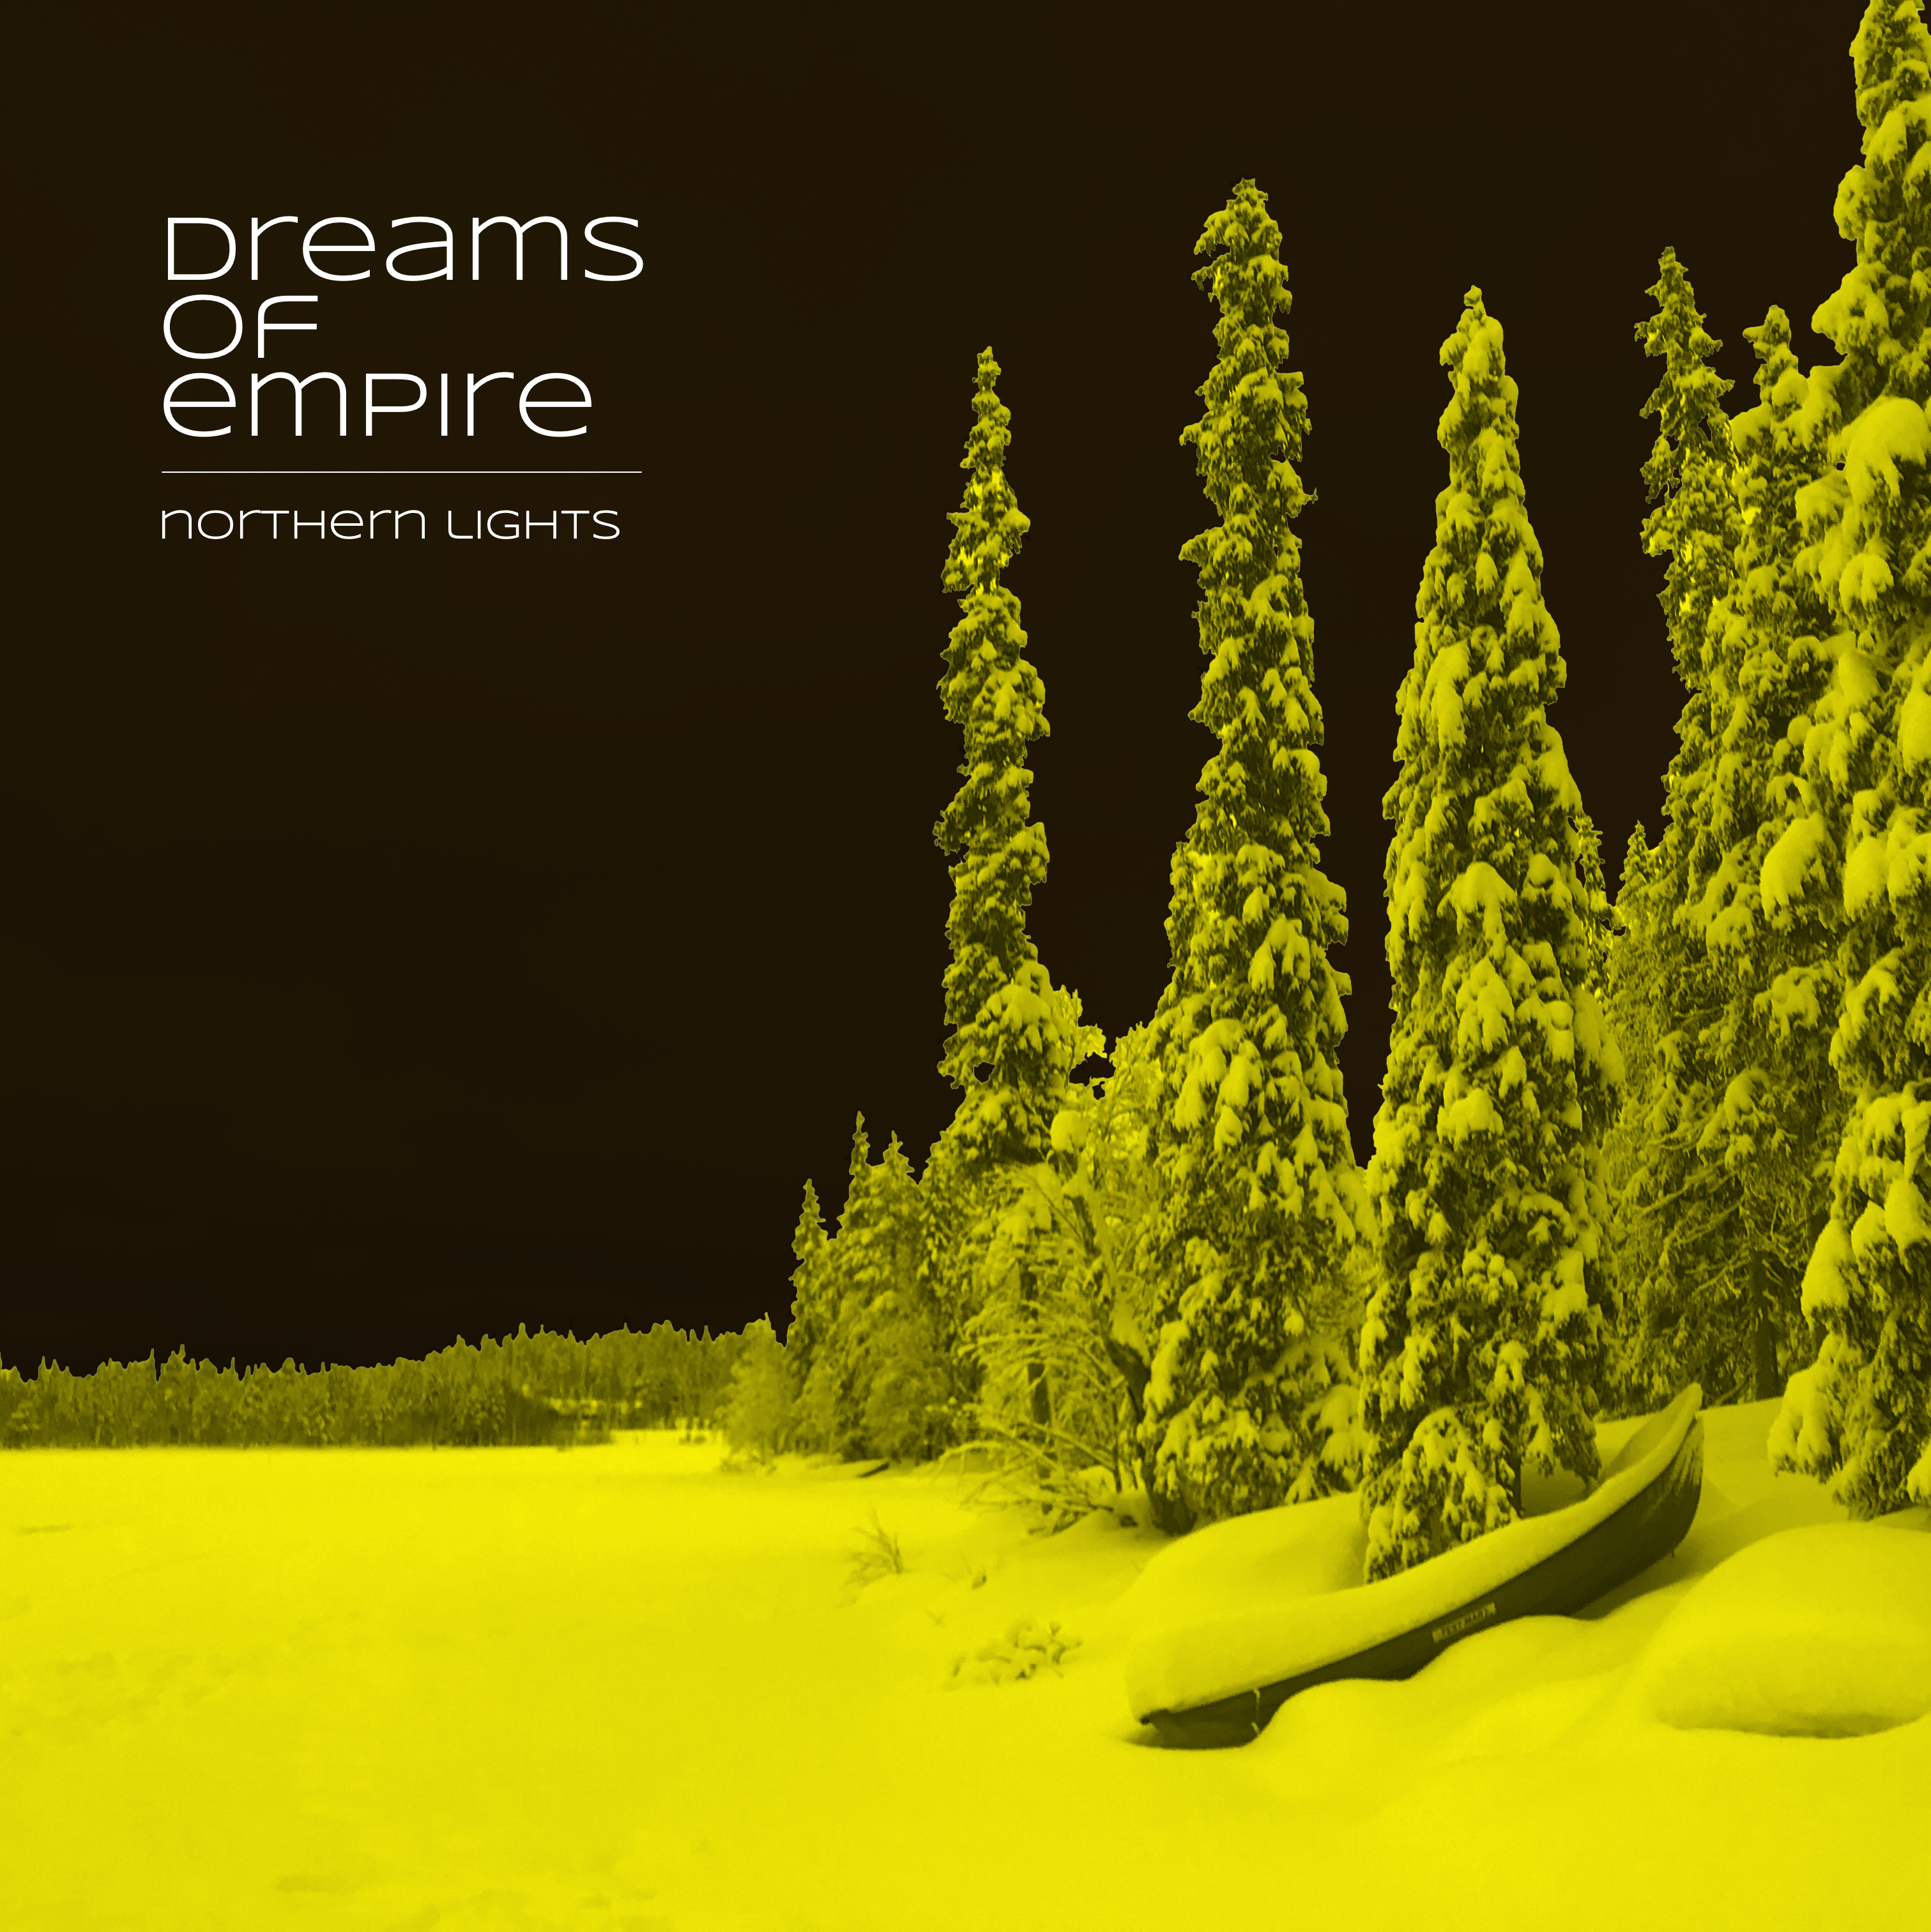 dreams of empire - northern lights